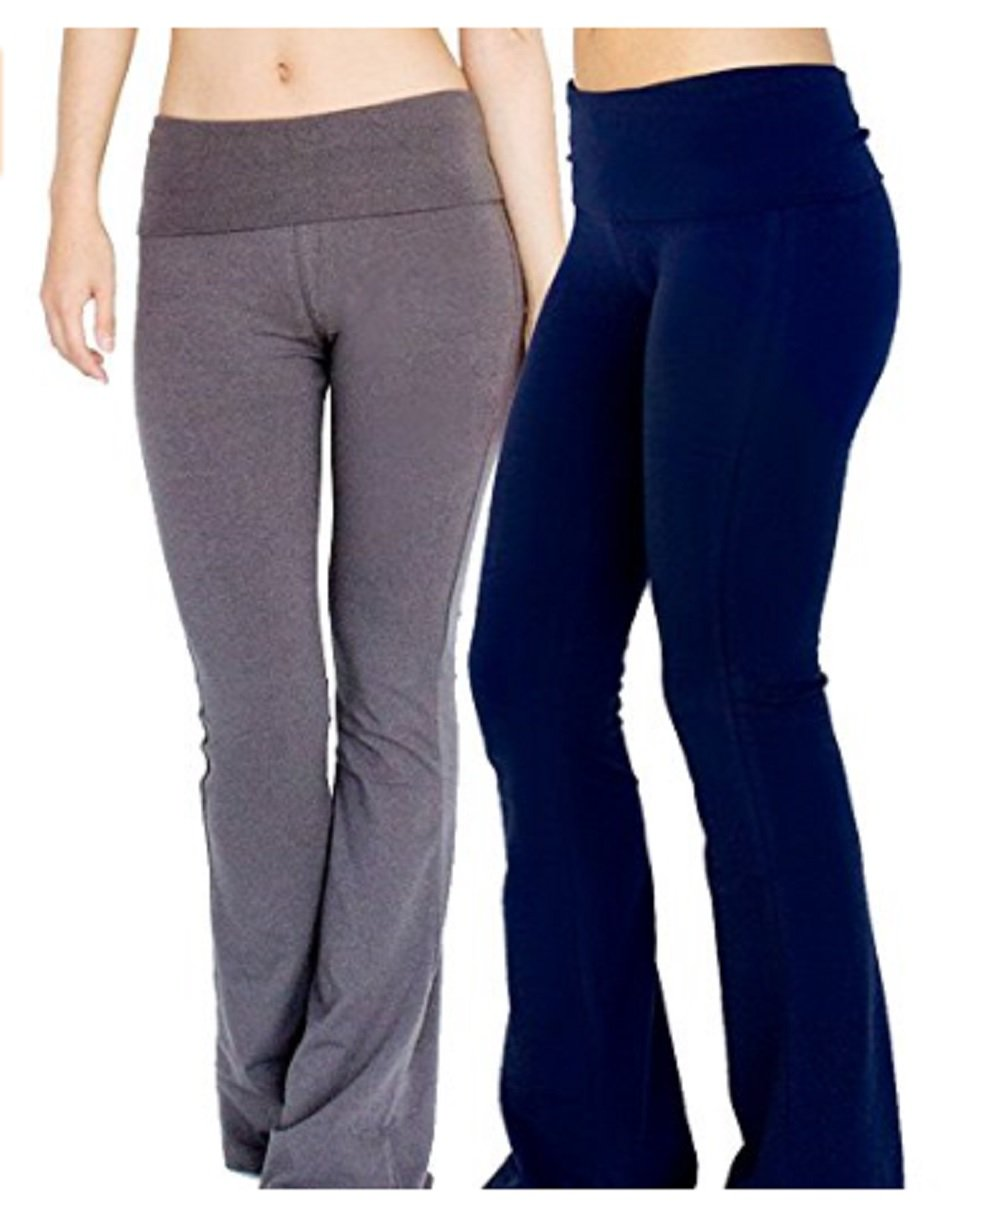 Hollywood Star Fashion Foldover Contrast Waist Bootleg Flare Yoga Pants (Large, 2Pack-Charc&Navy)